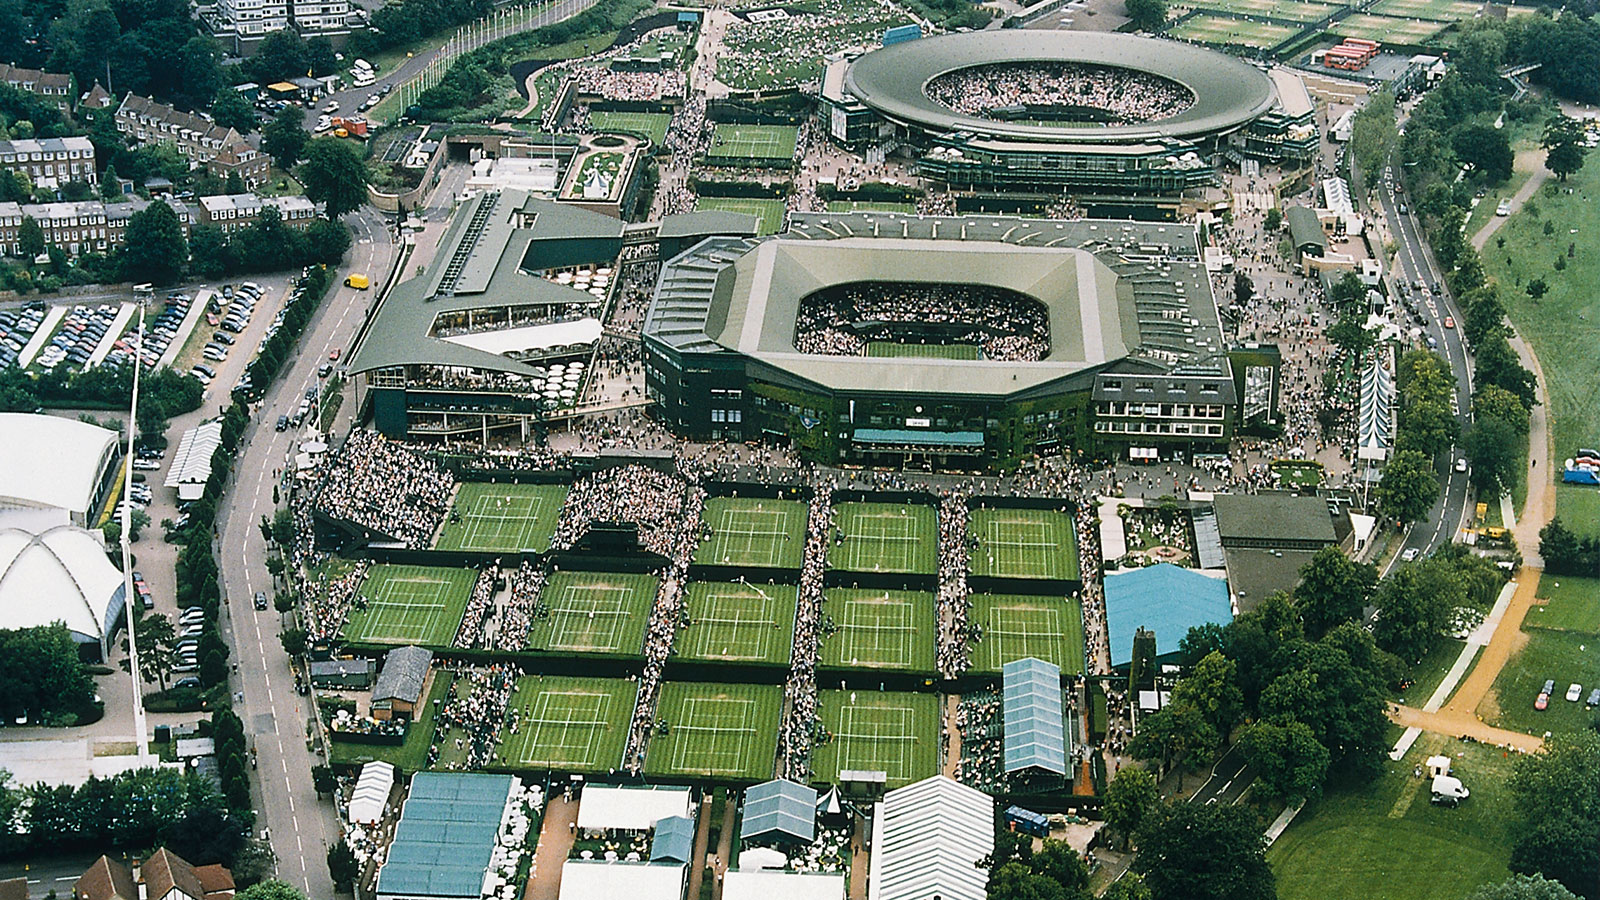 All England Lawn Tennis Club. Sursa foto: bdp.com